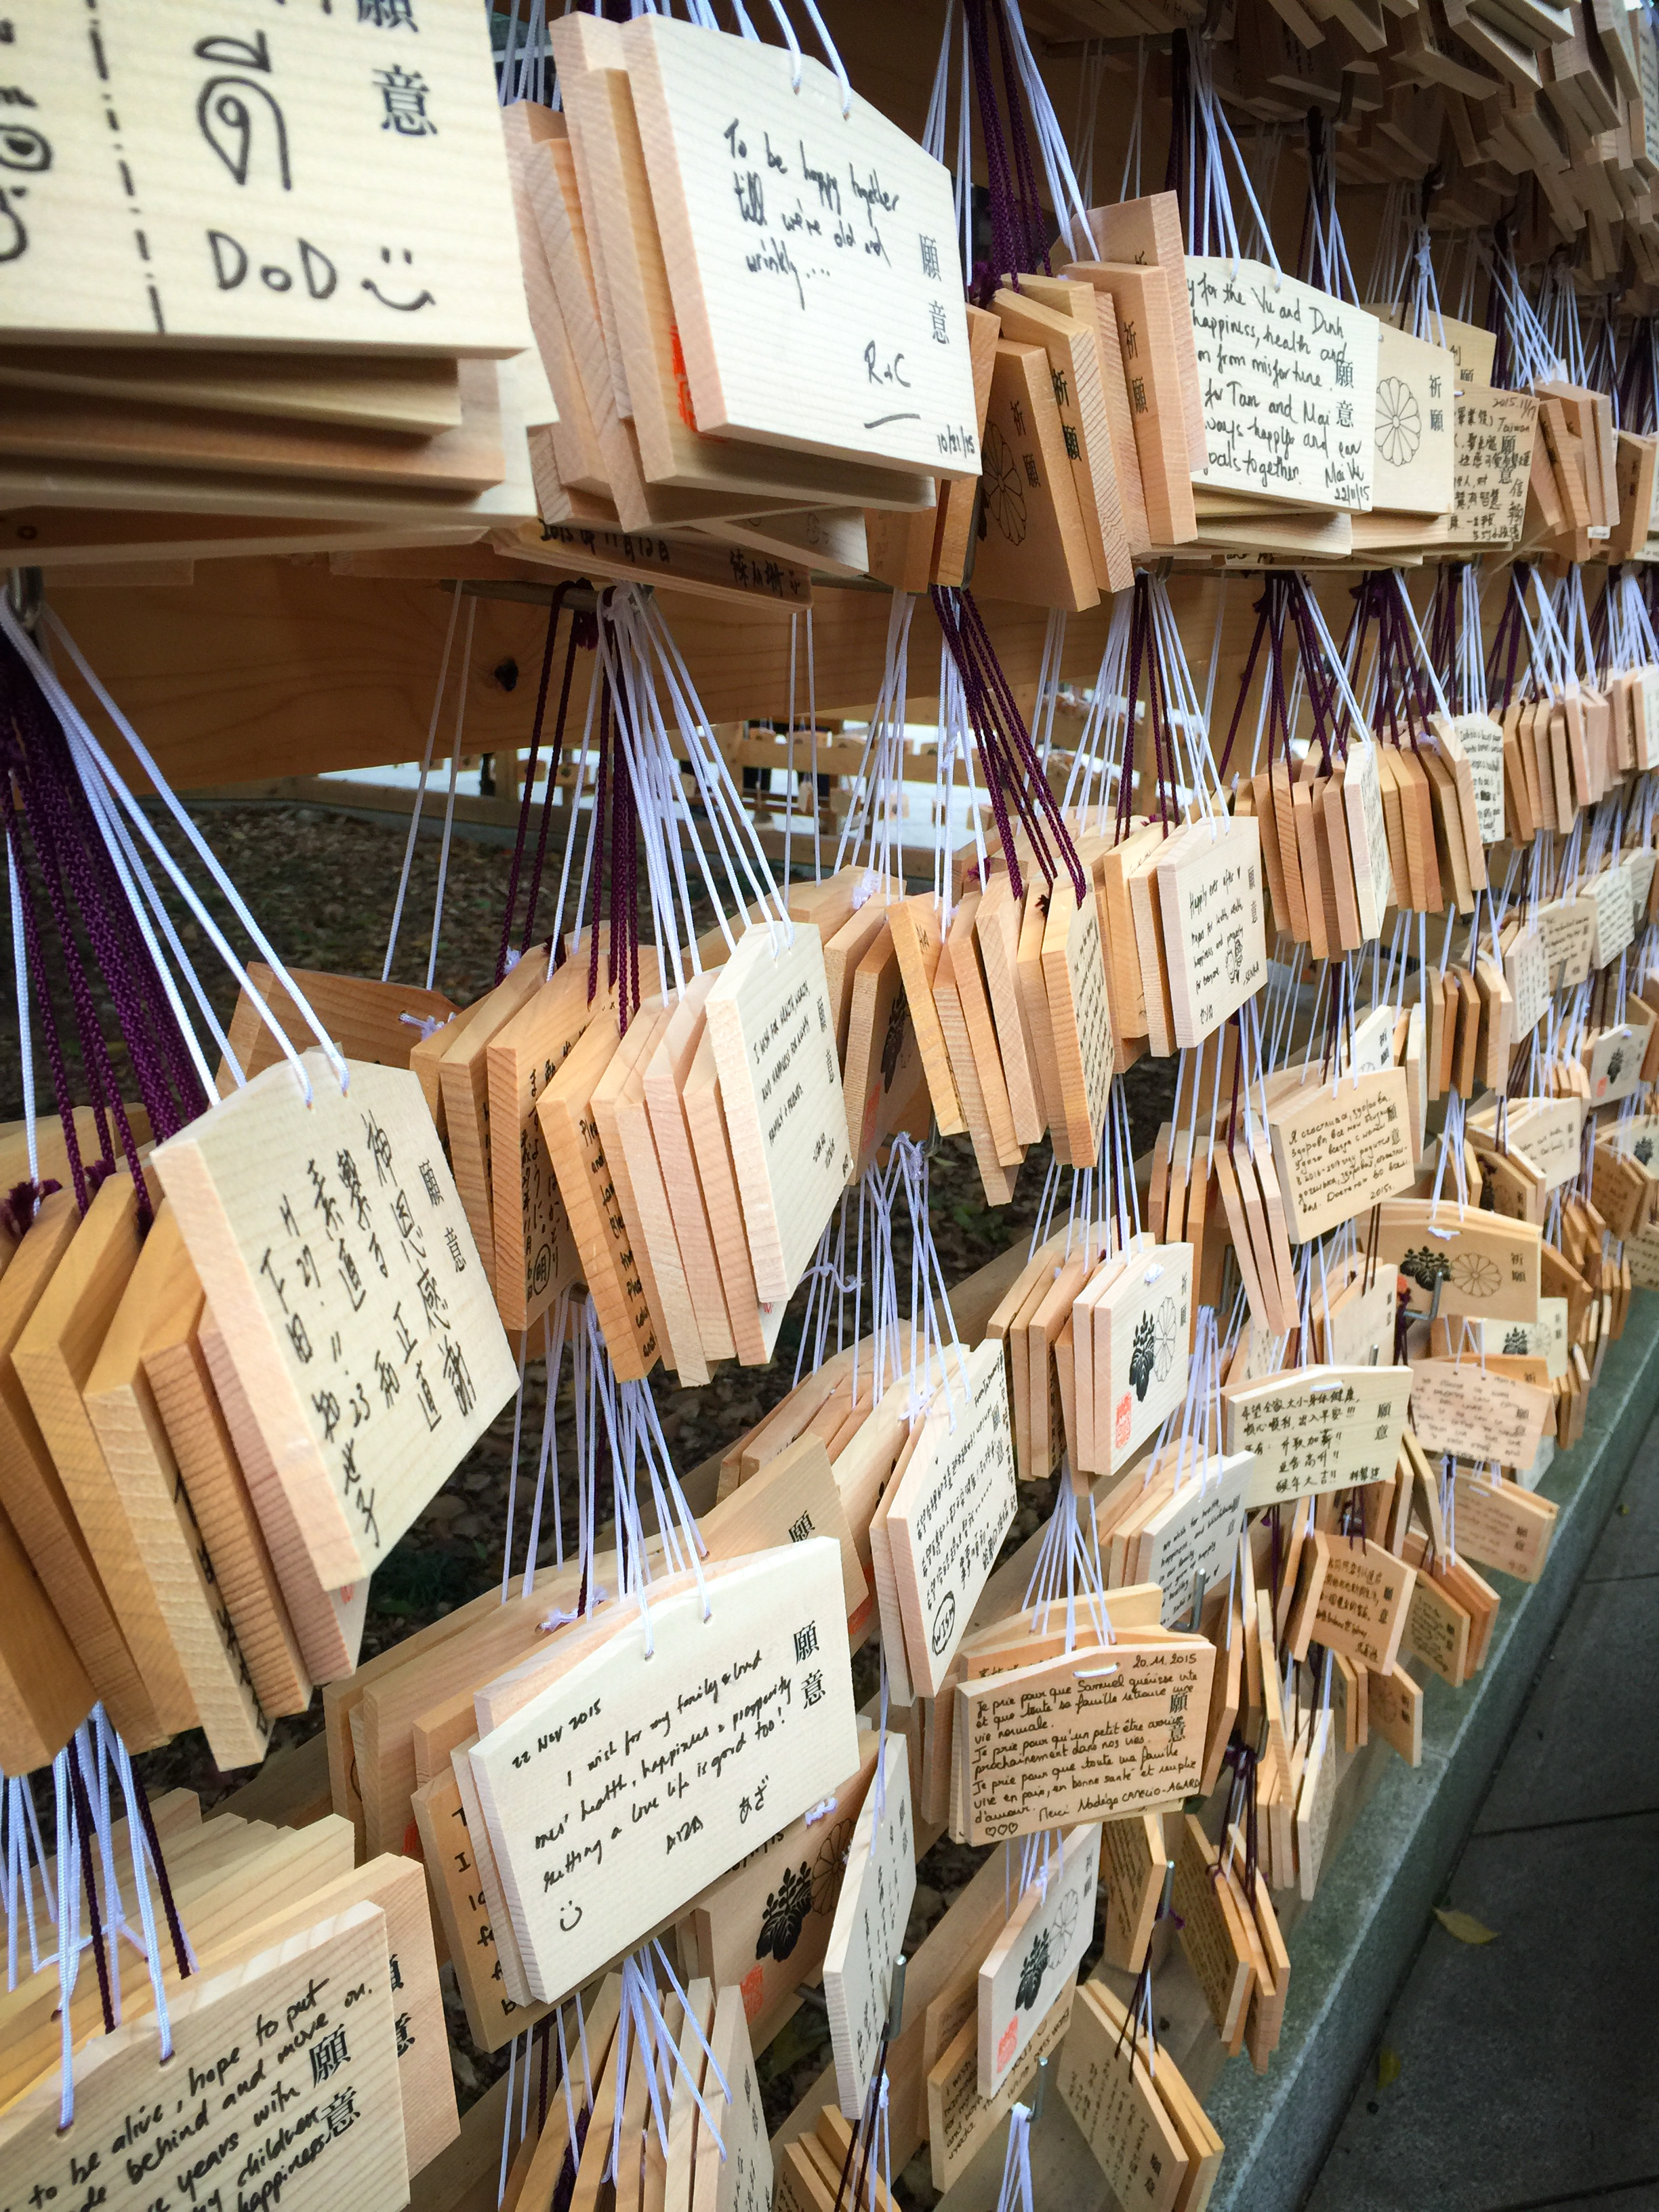 Prayers, written in many different languages, left at the shrine